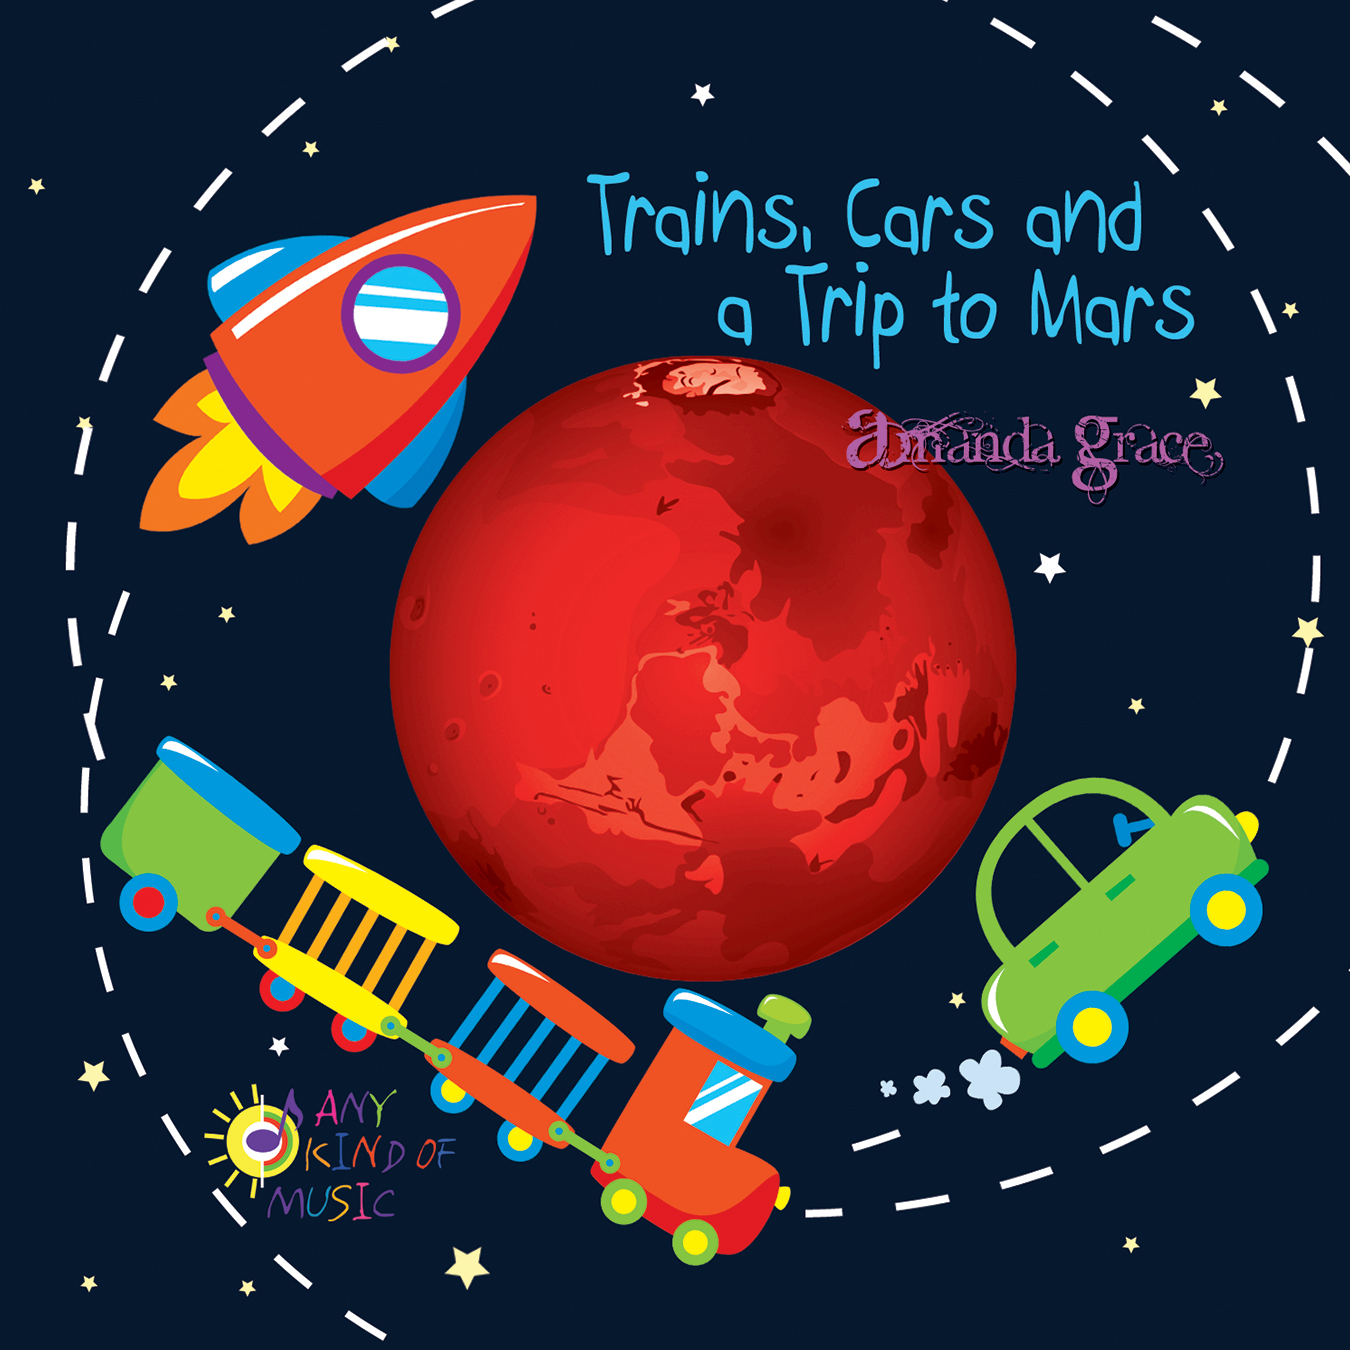 Listen to Trains, Cars and a Trip to Mars.